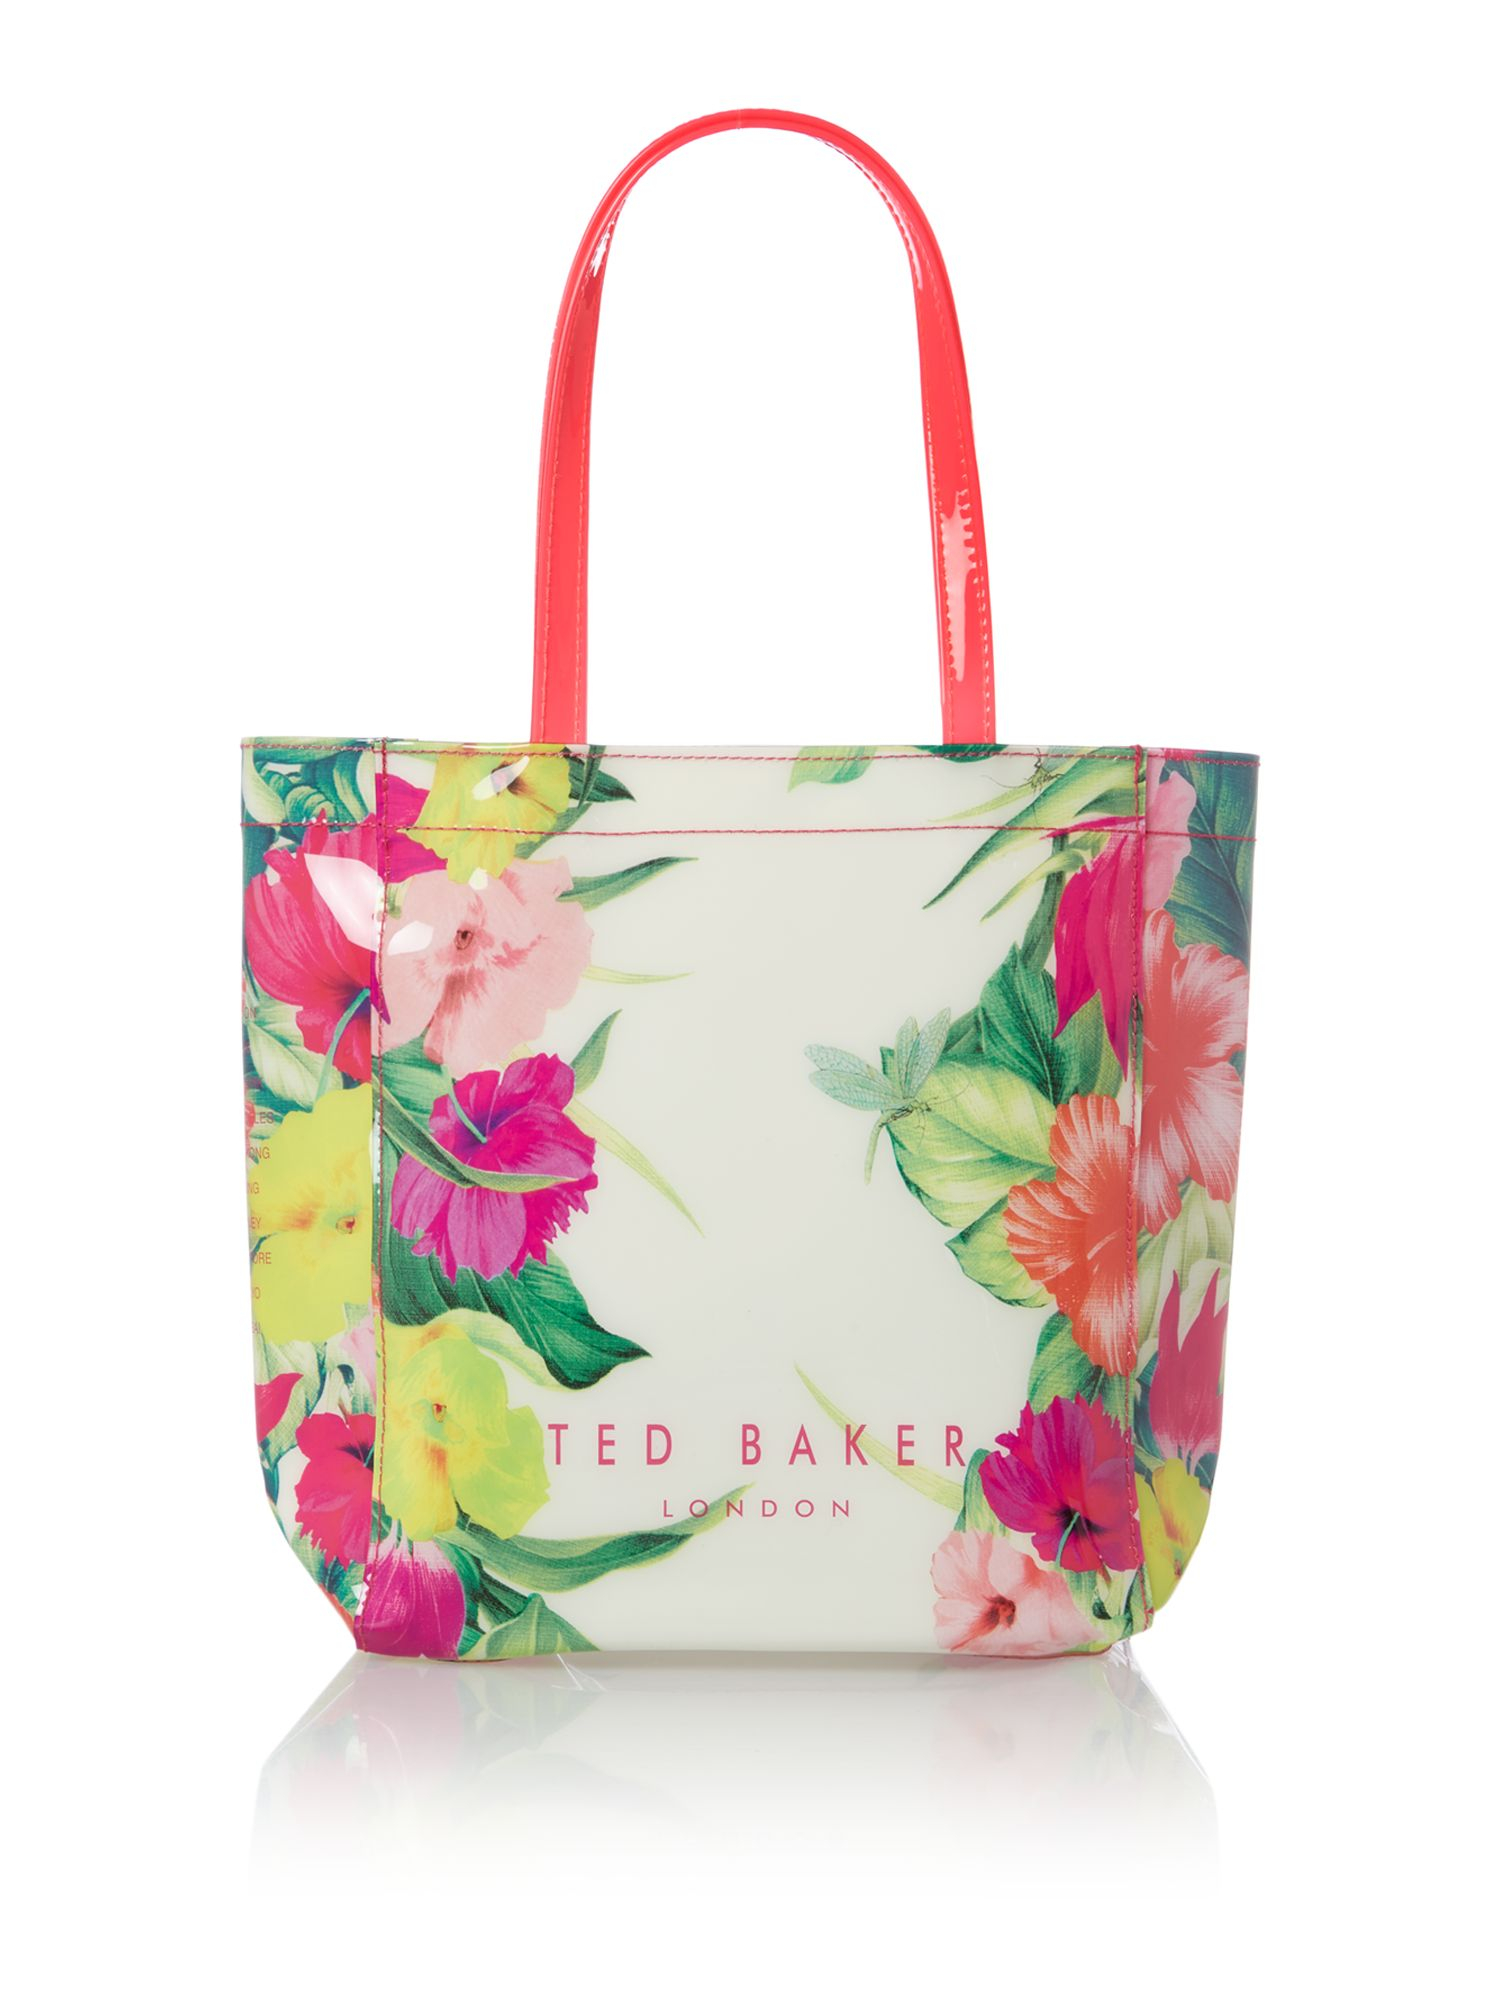 Ted baker Floral Small Tote Bag | Lyst